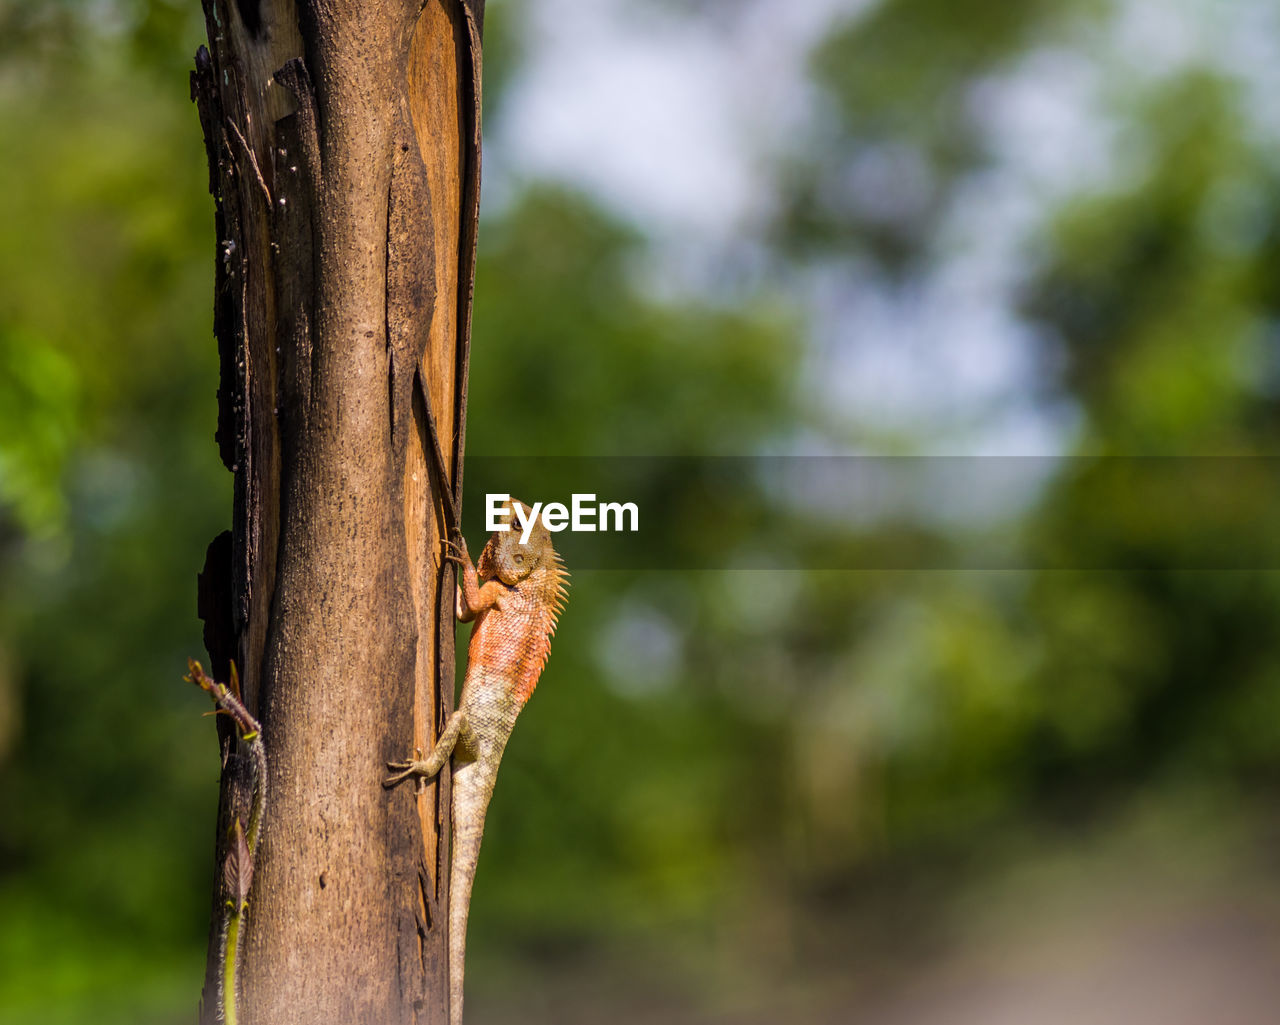 focus on foreground, animals in the wild, tree, animal wildlife, tree trunk, trunk, close-up, one animal, day, plant, animal themes, animal, no people, nature, outdoors, growth, invertebrate, vertebrate, selective focus, beauty in nature